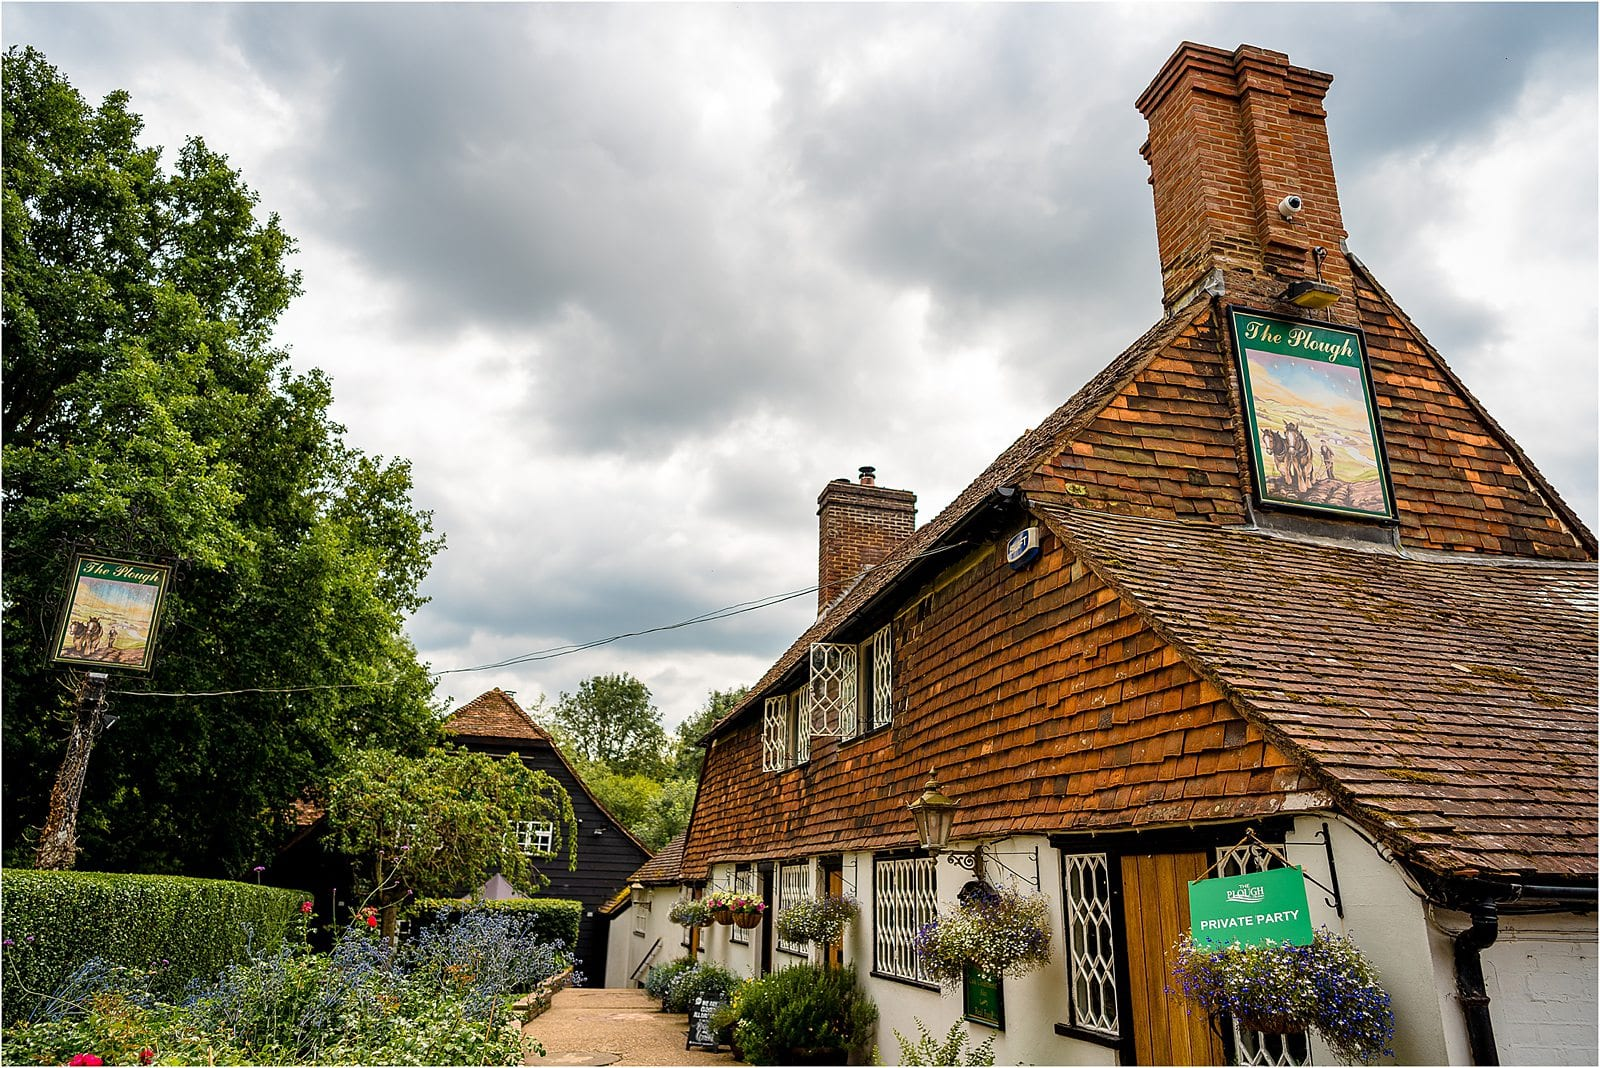 the plough inn at leigh in kent wedding venue